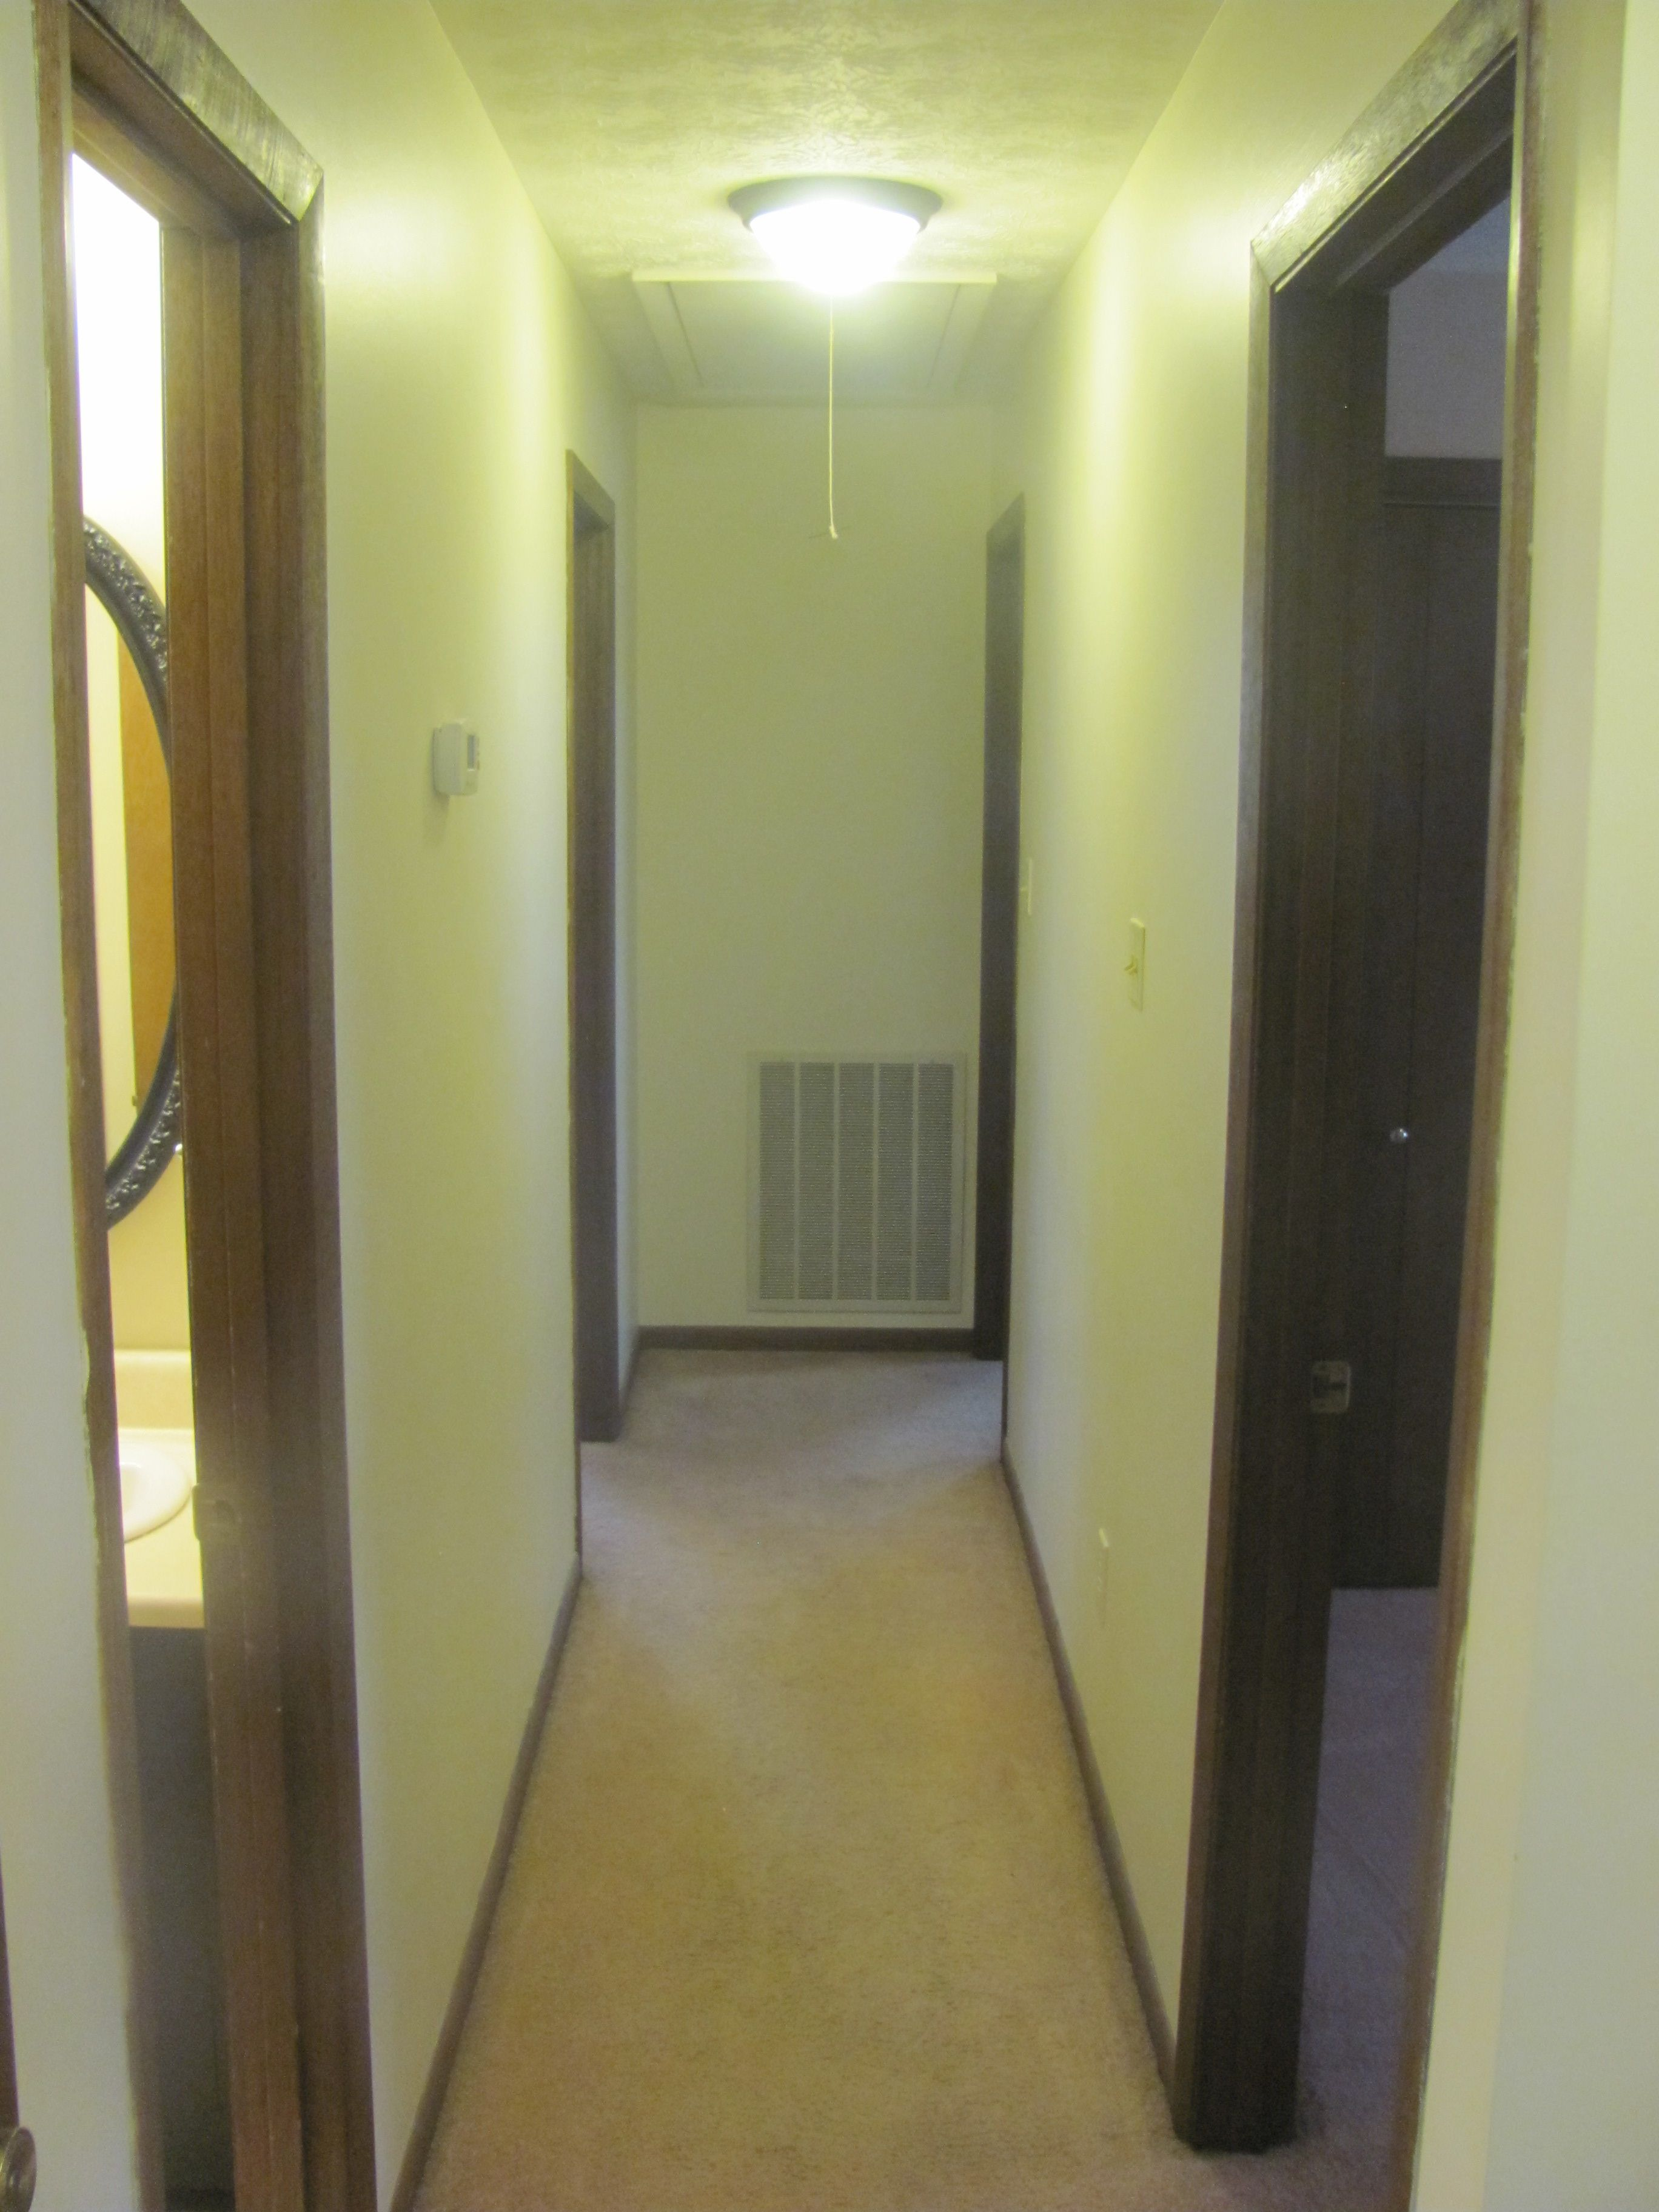 The interior has recently been painted and all carpets have been cleaned. This home is ready to be lived in.